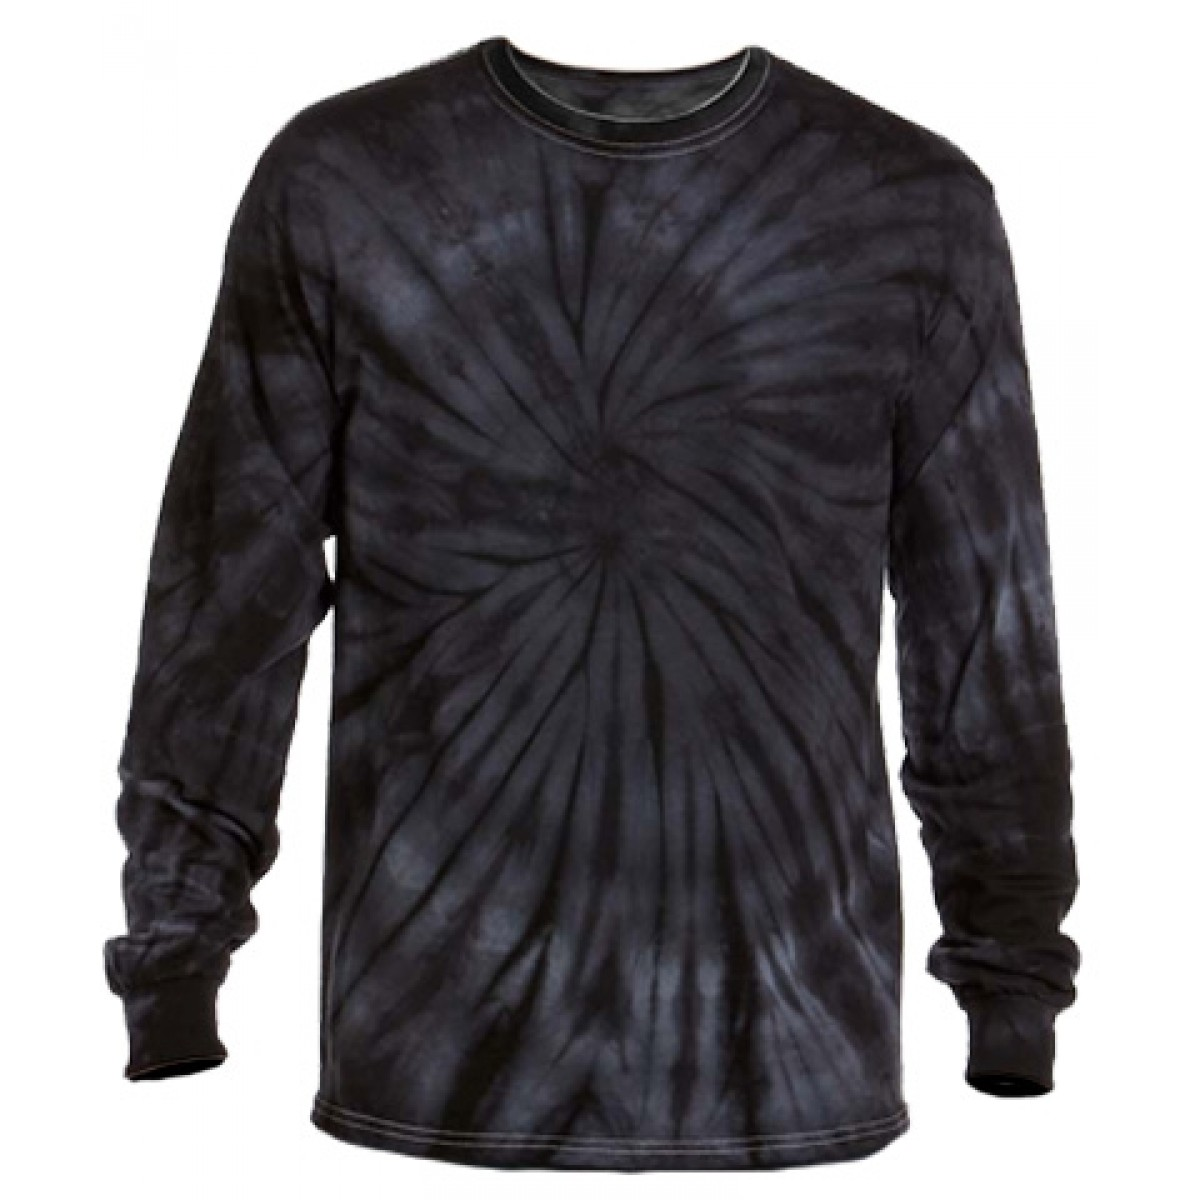 Multi Color Tie-Dye Long Sleeve Shirt -Gray -M